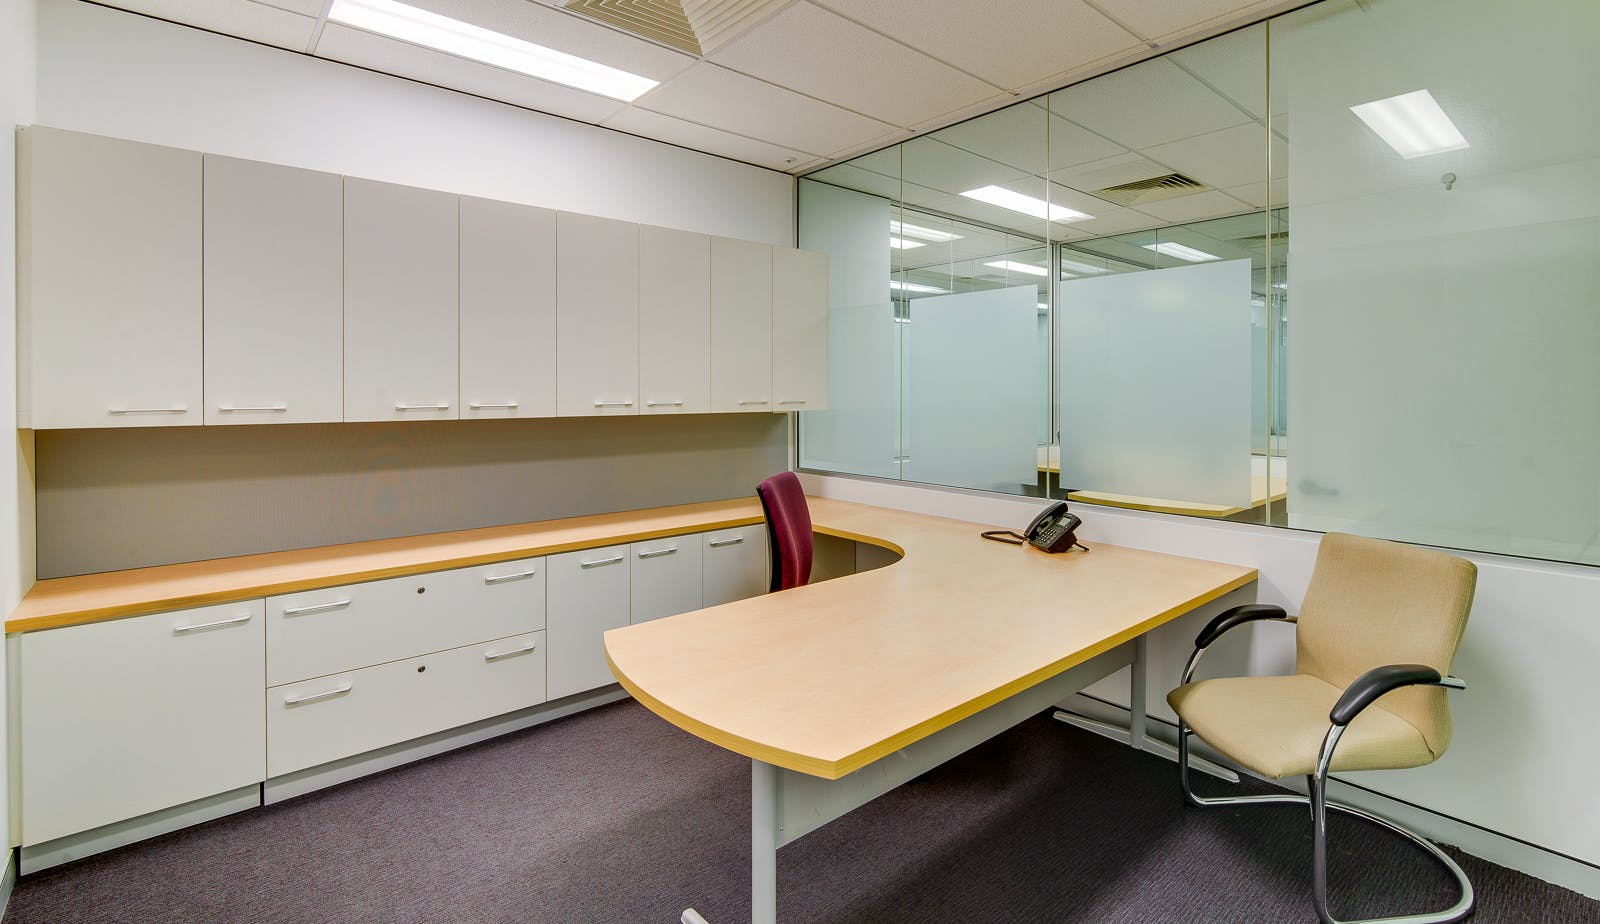 Office 10, serviced office at The Aspire Centre, image 1